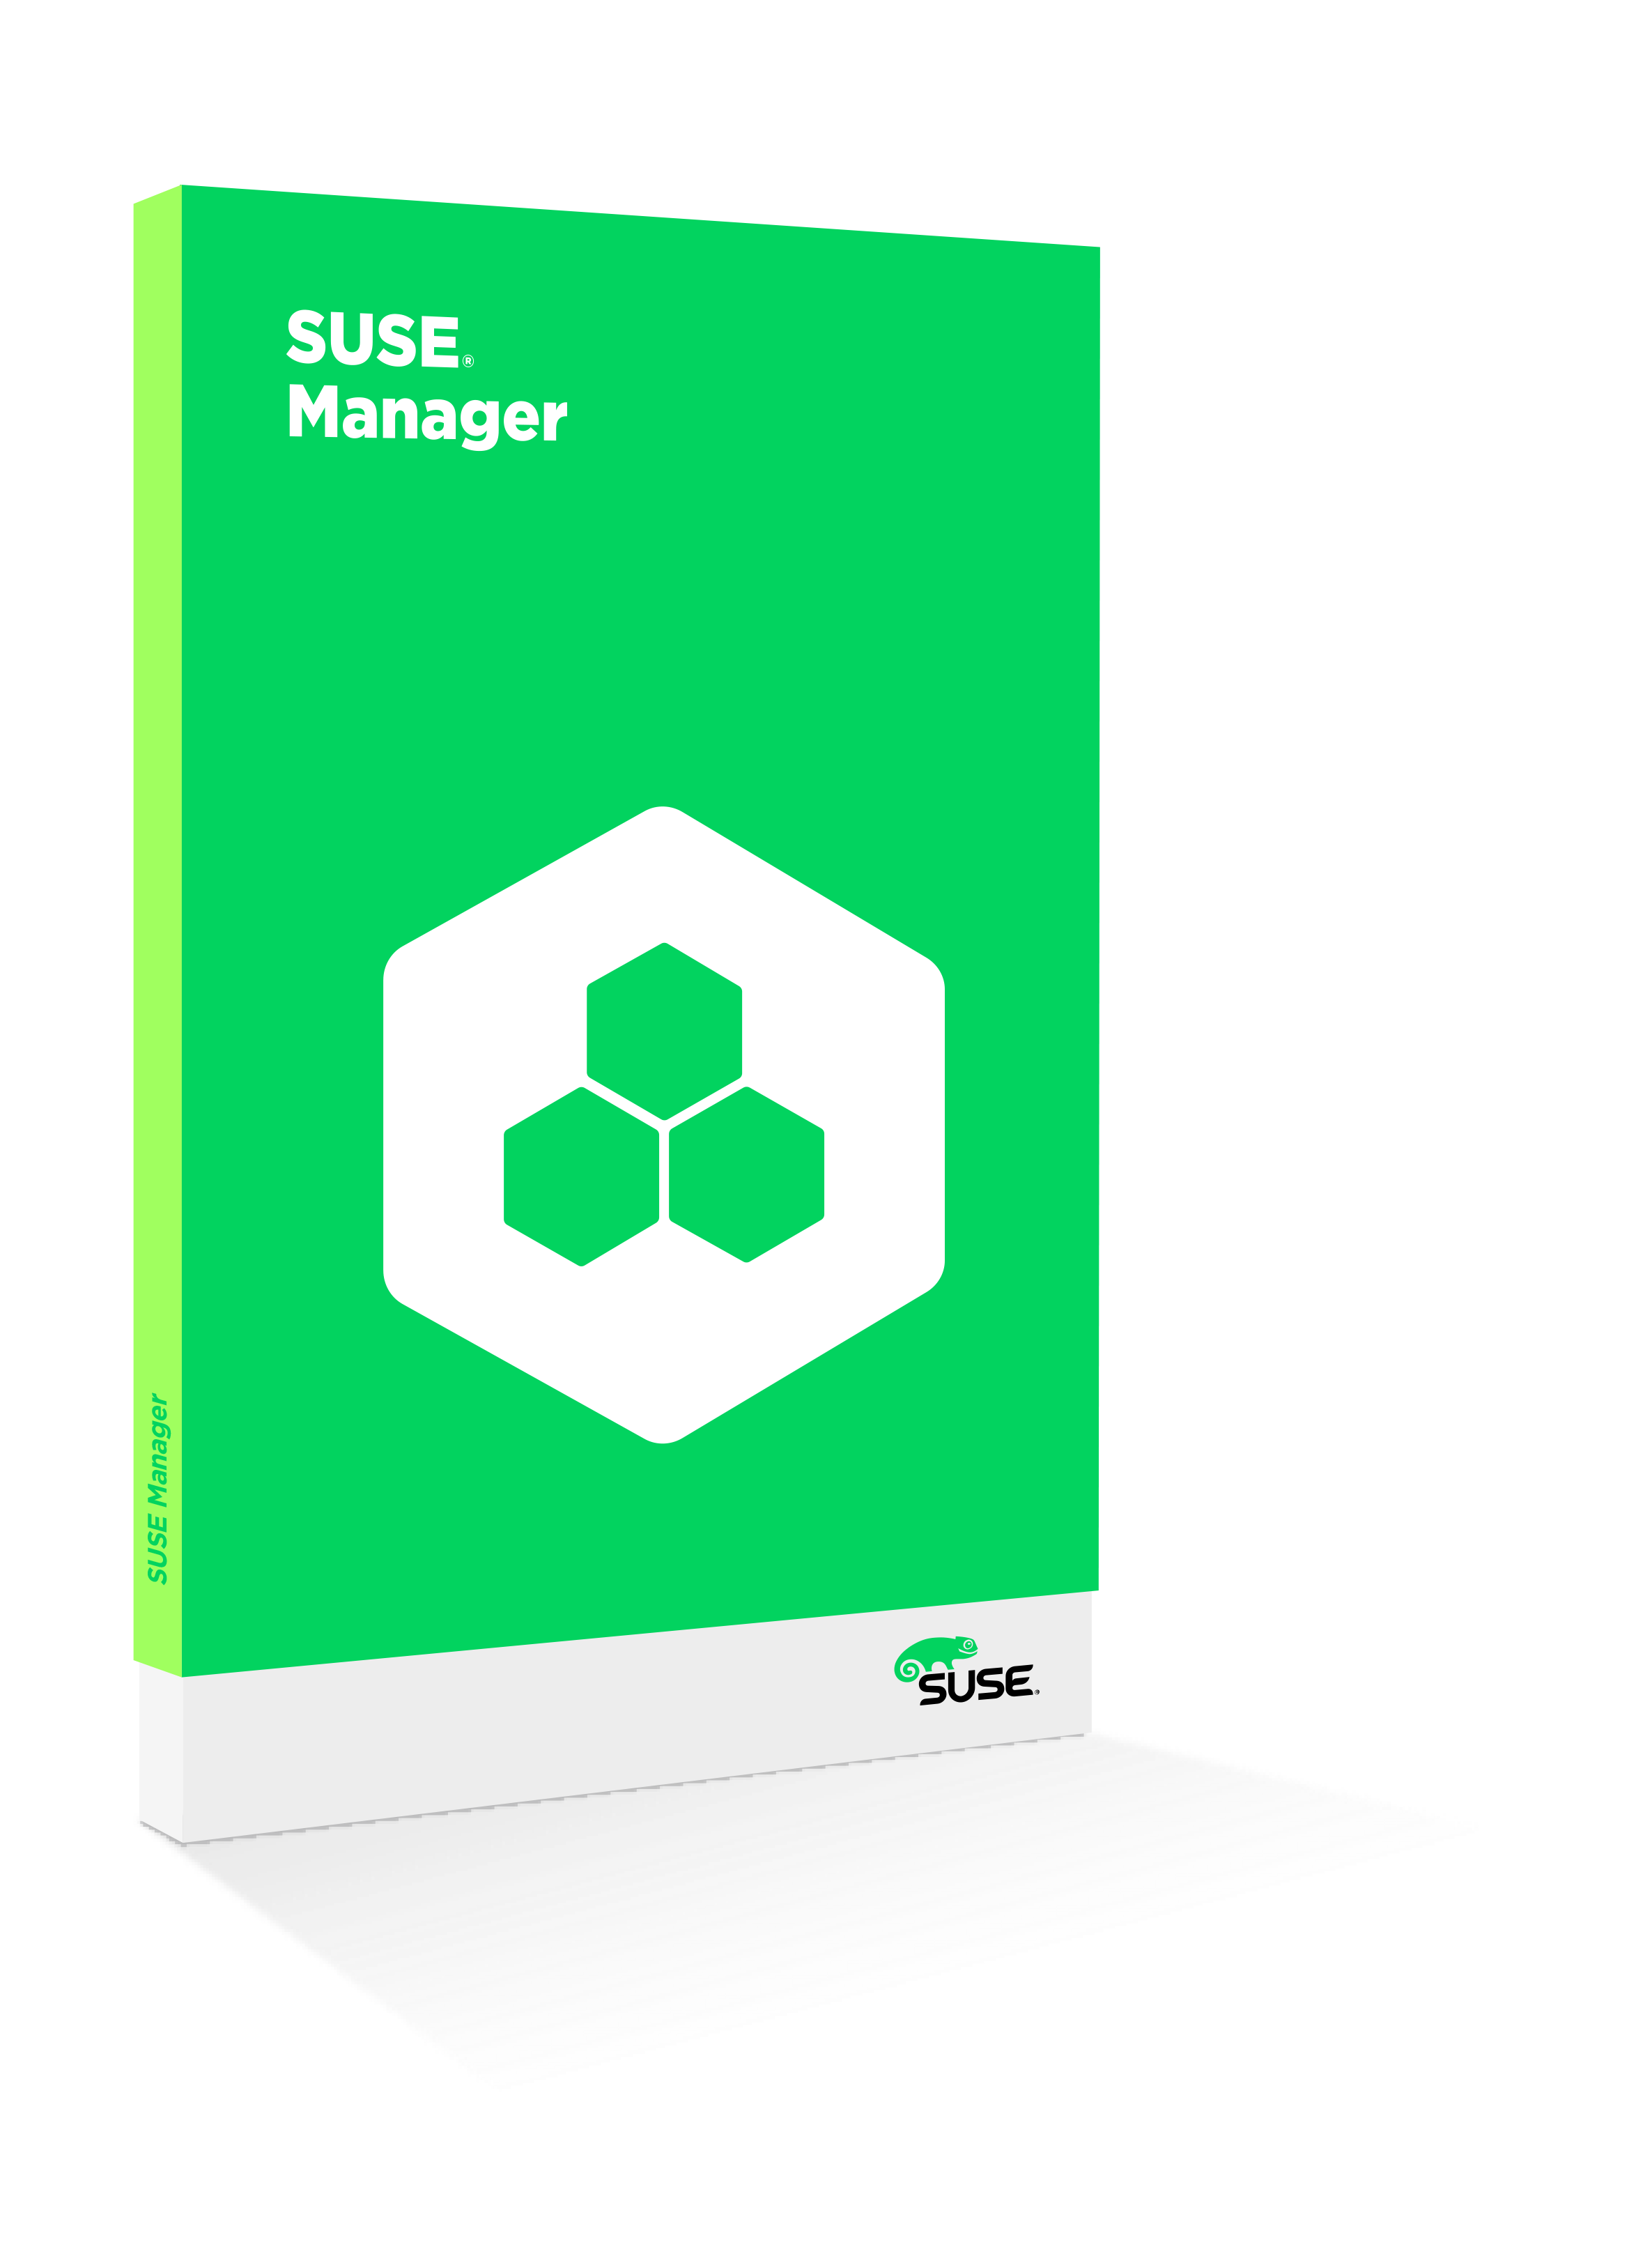 SUSE Manager